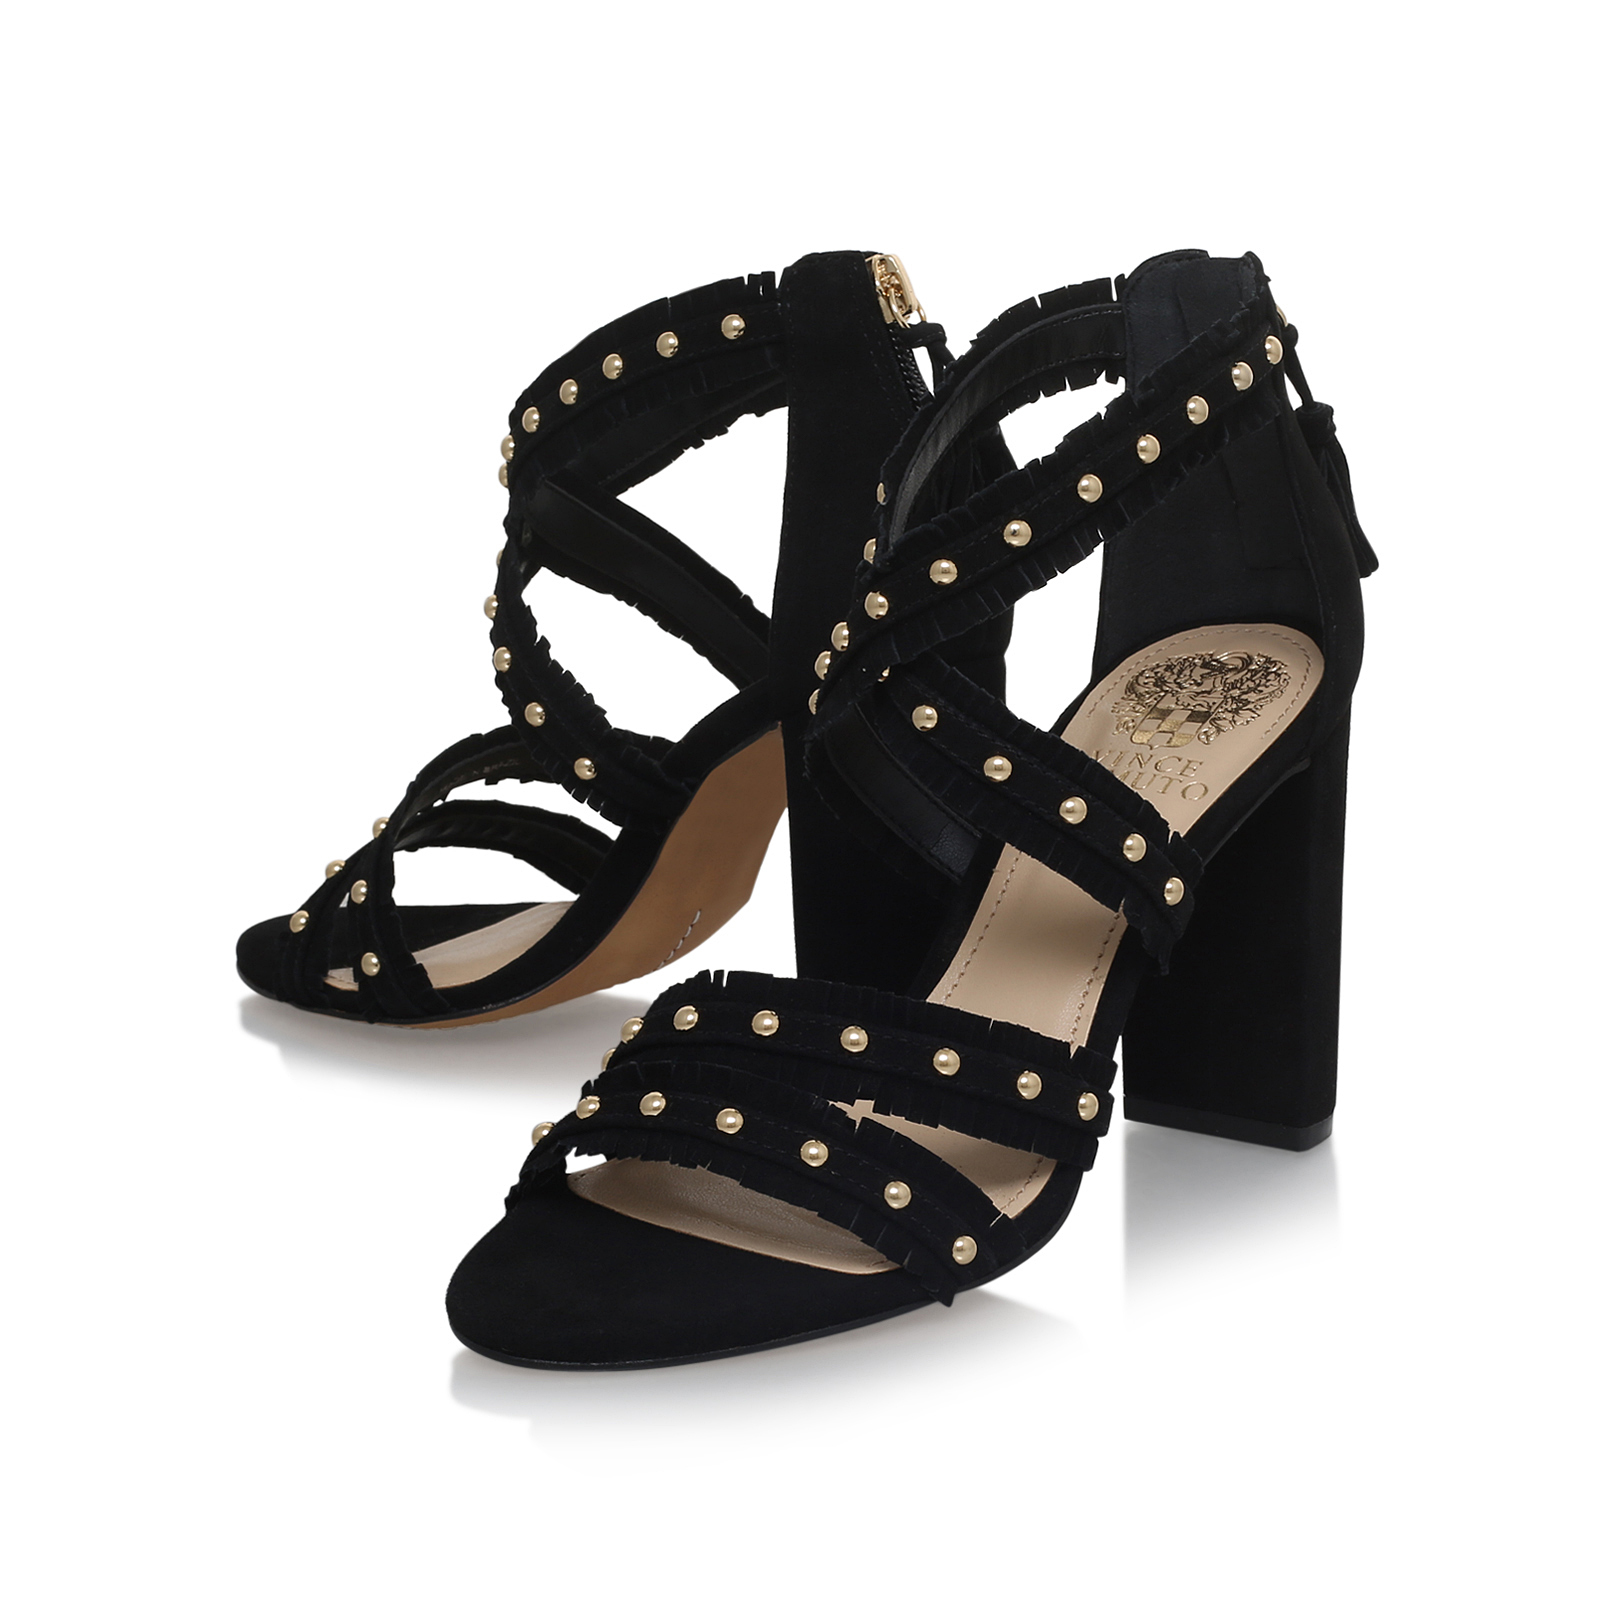 f7797d9c8a5 MACHILA Vince Camuto Machila Black Suede High Heel Sandals Block ...